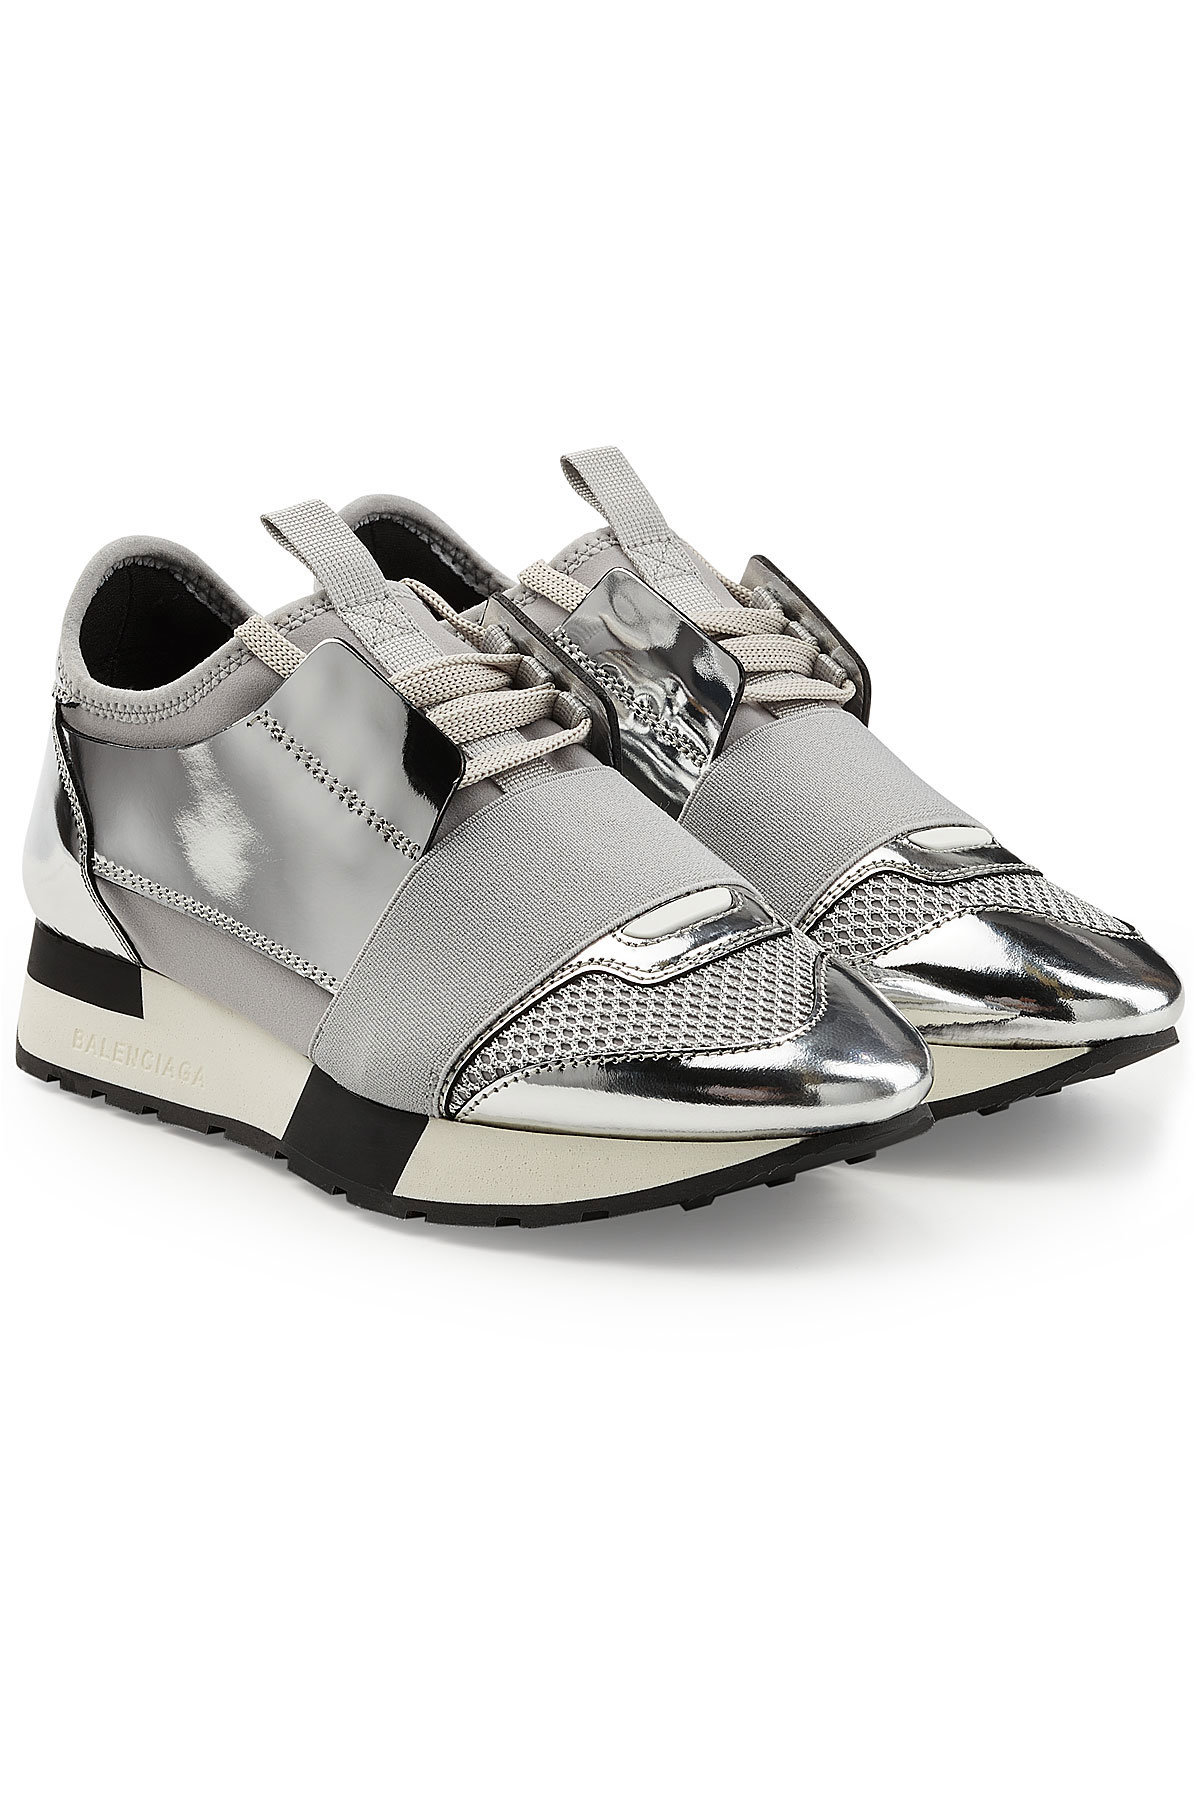 Balenciaga Race Runner Sneakers with Metallic Leather and Satin Gr. IT 36 AAiTcL3y